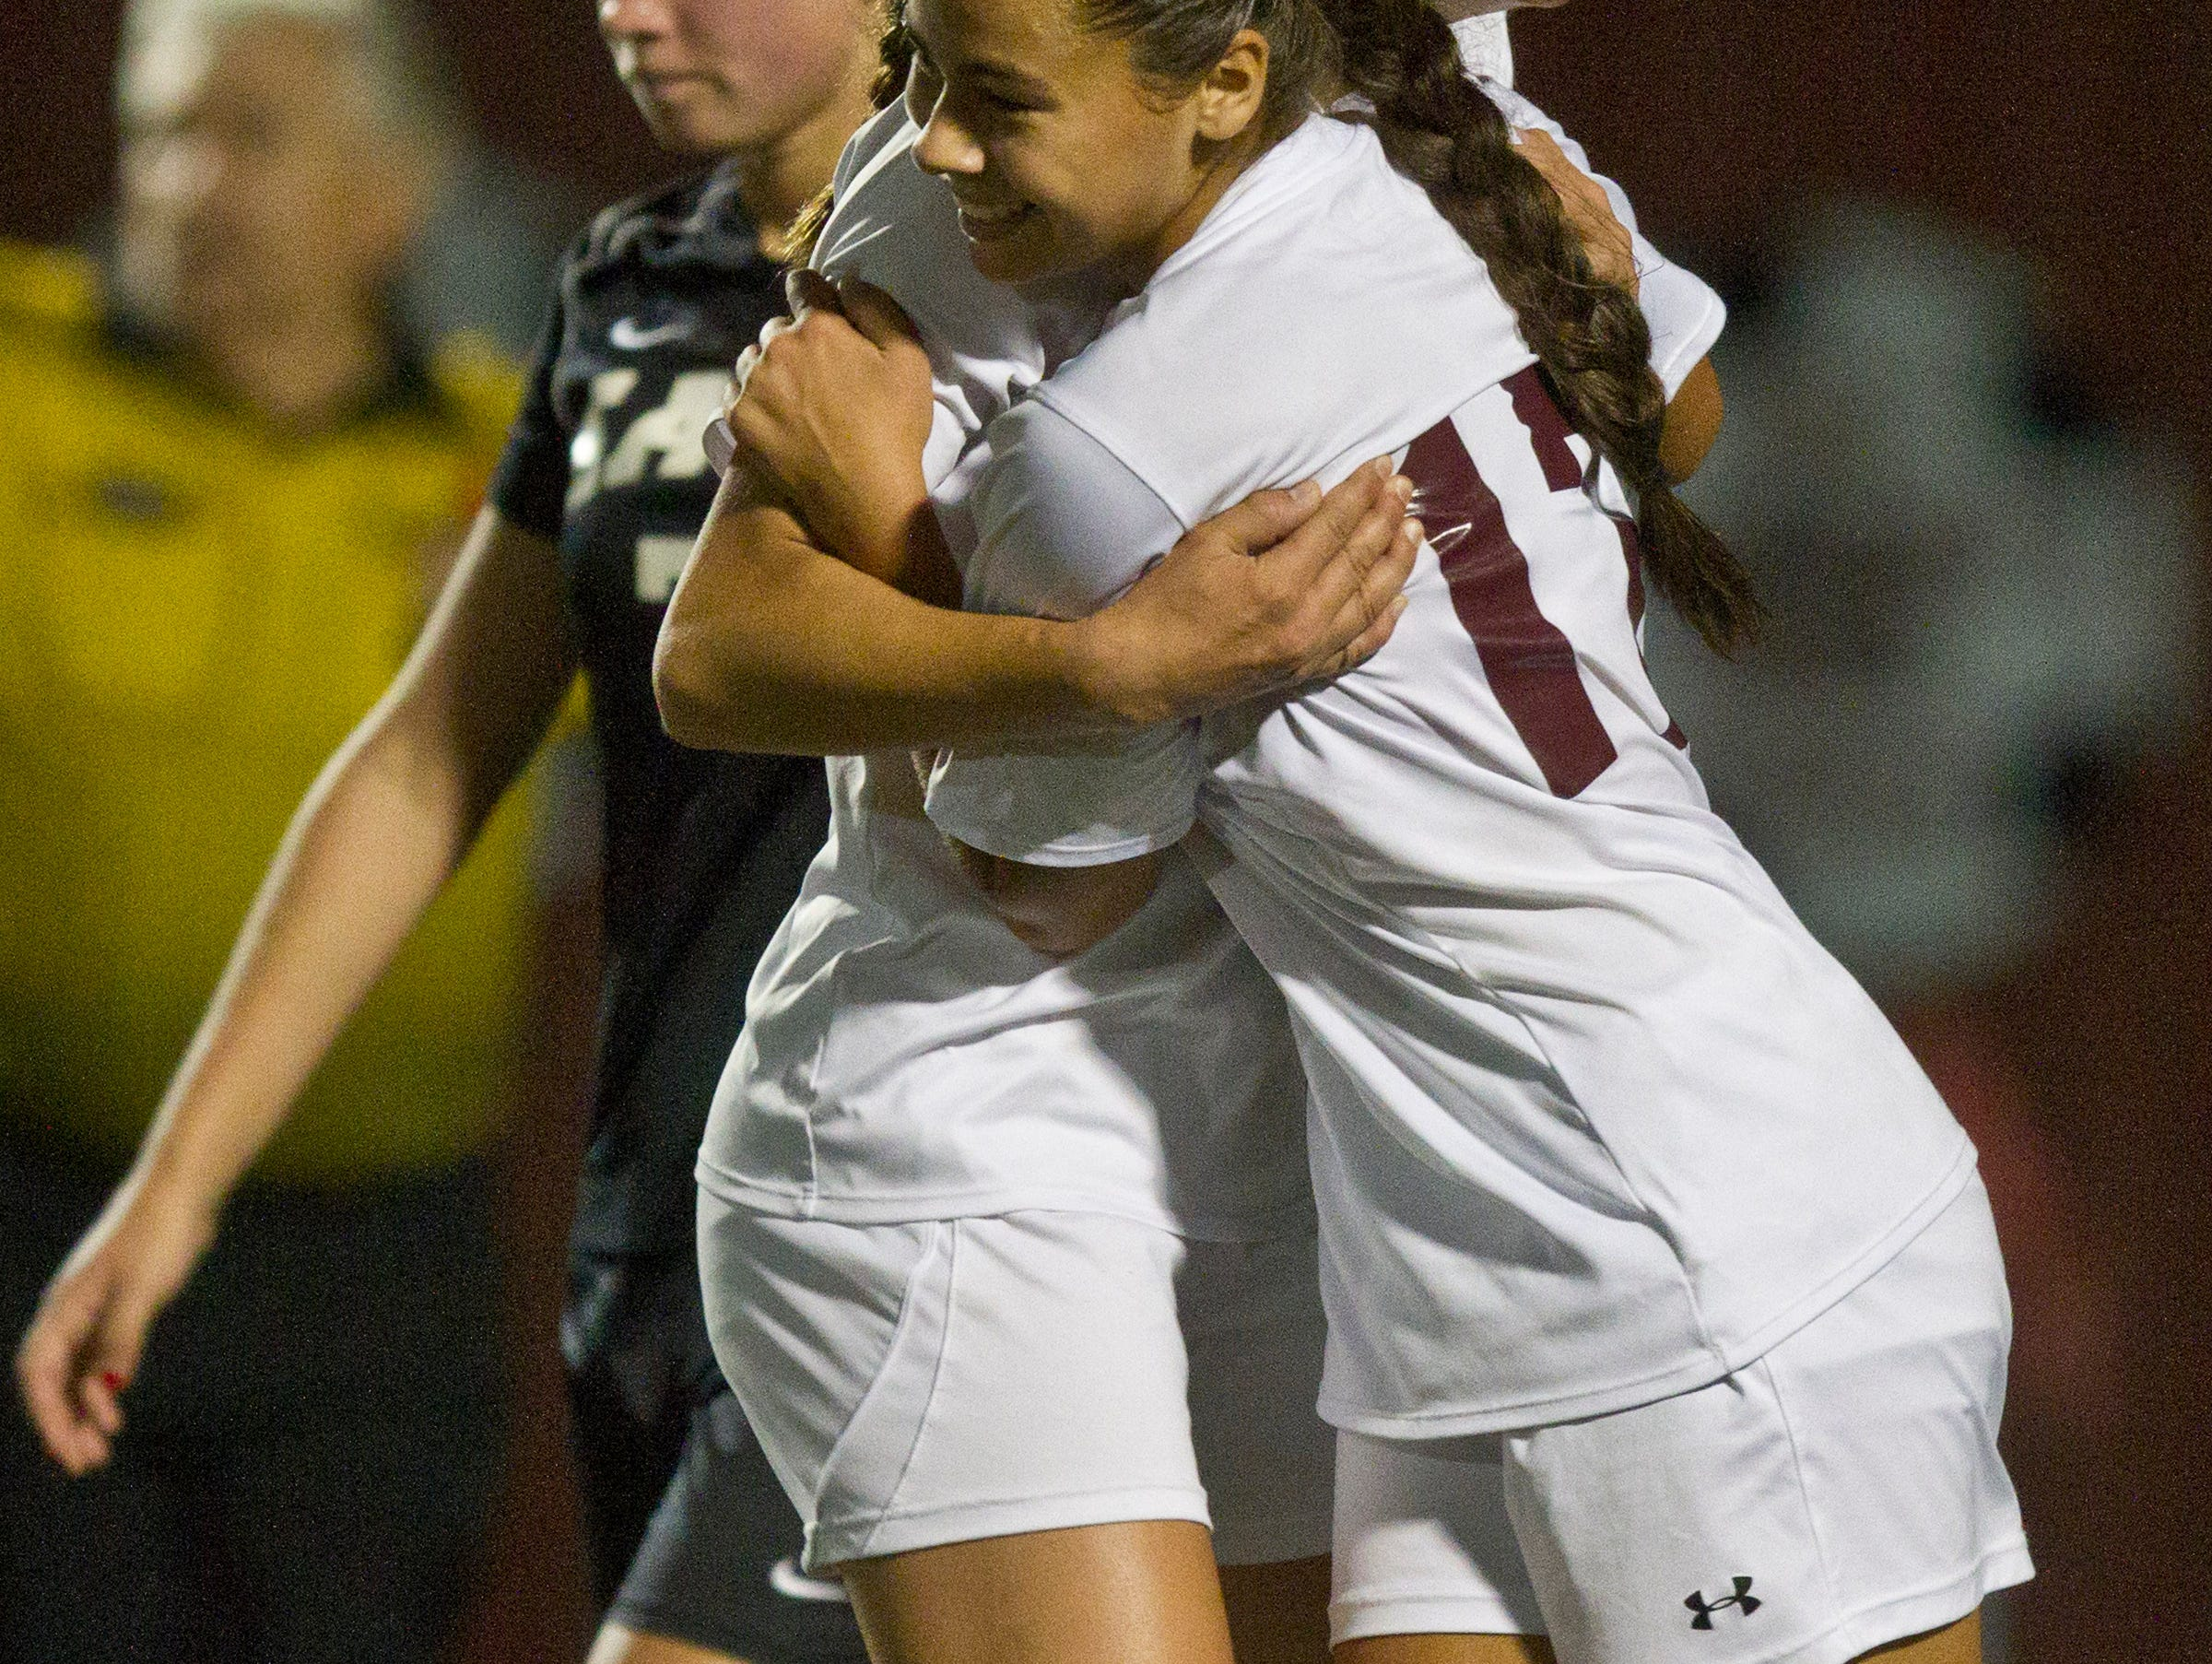 Toms River South's Aliya Canfield (17) celebrates with Charly Slavick after scoring a goal. Toms River East vs Toms River South soccer. Toms River, NJ Tuesday, October 13, 2015 @dhoodhood